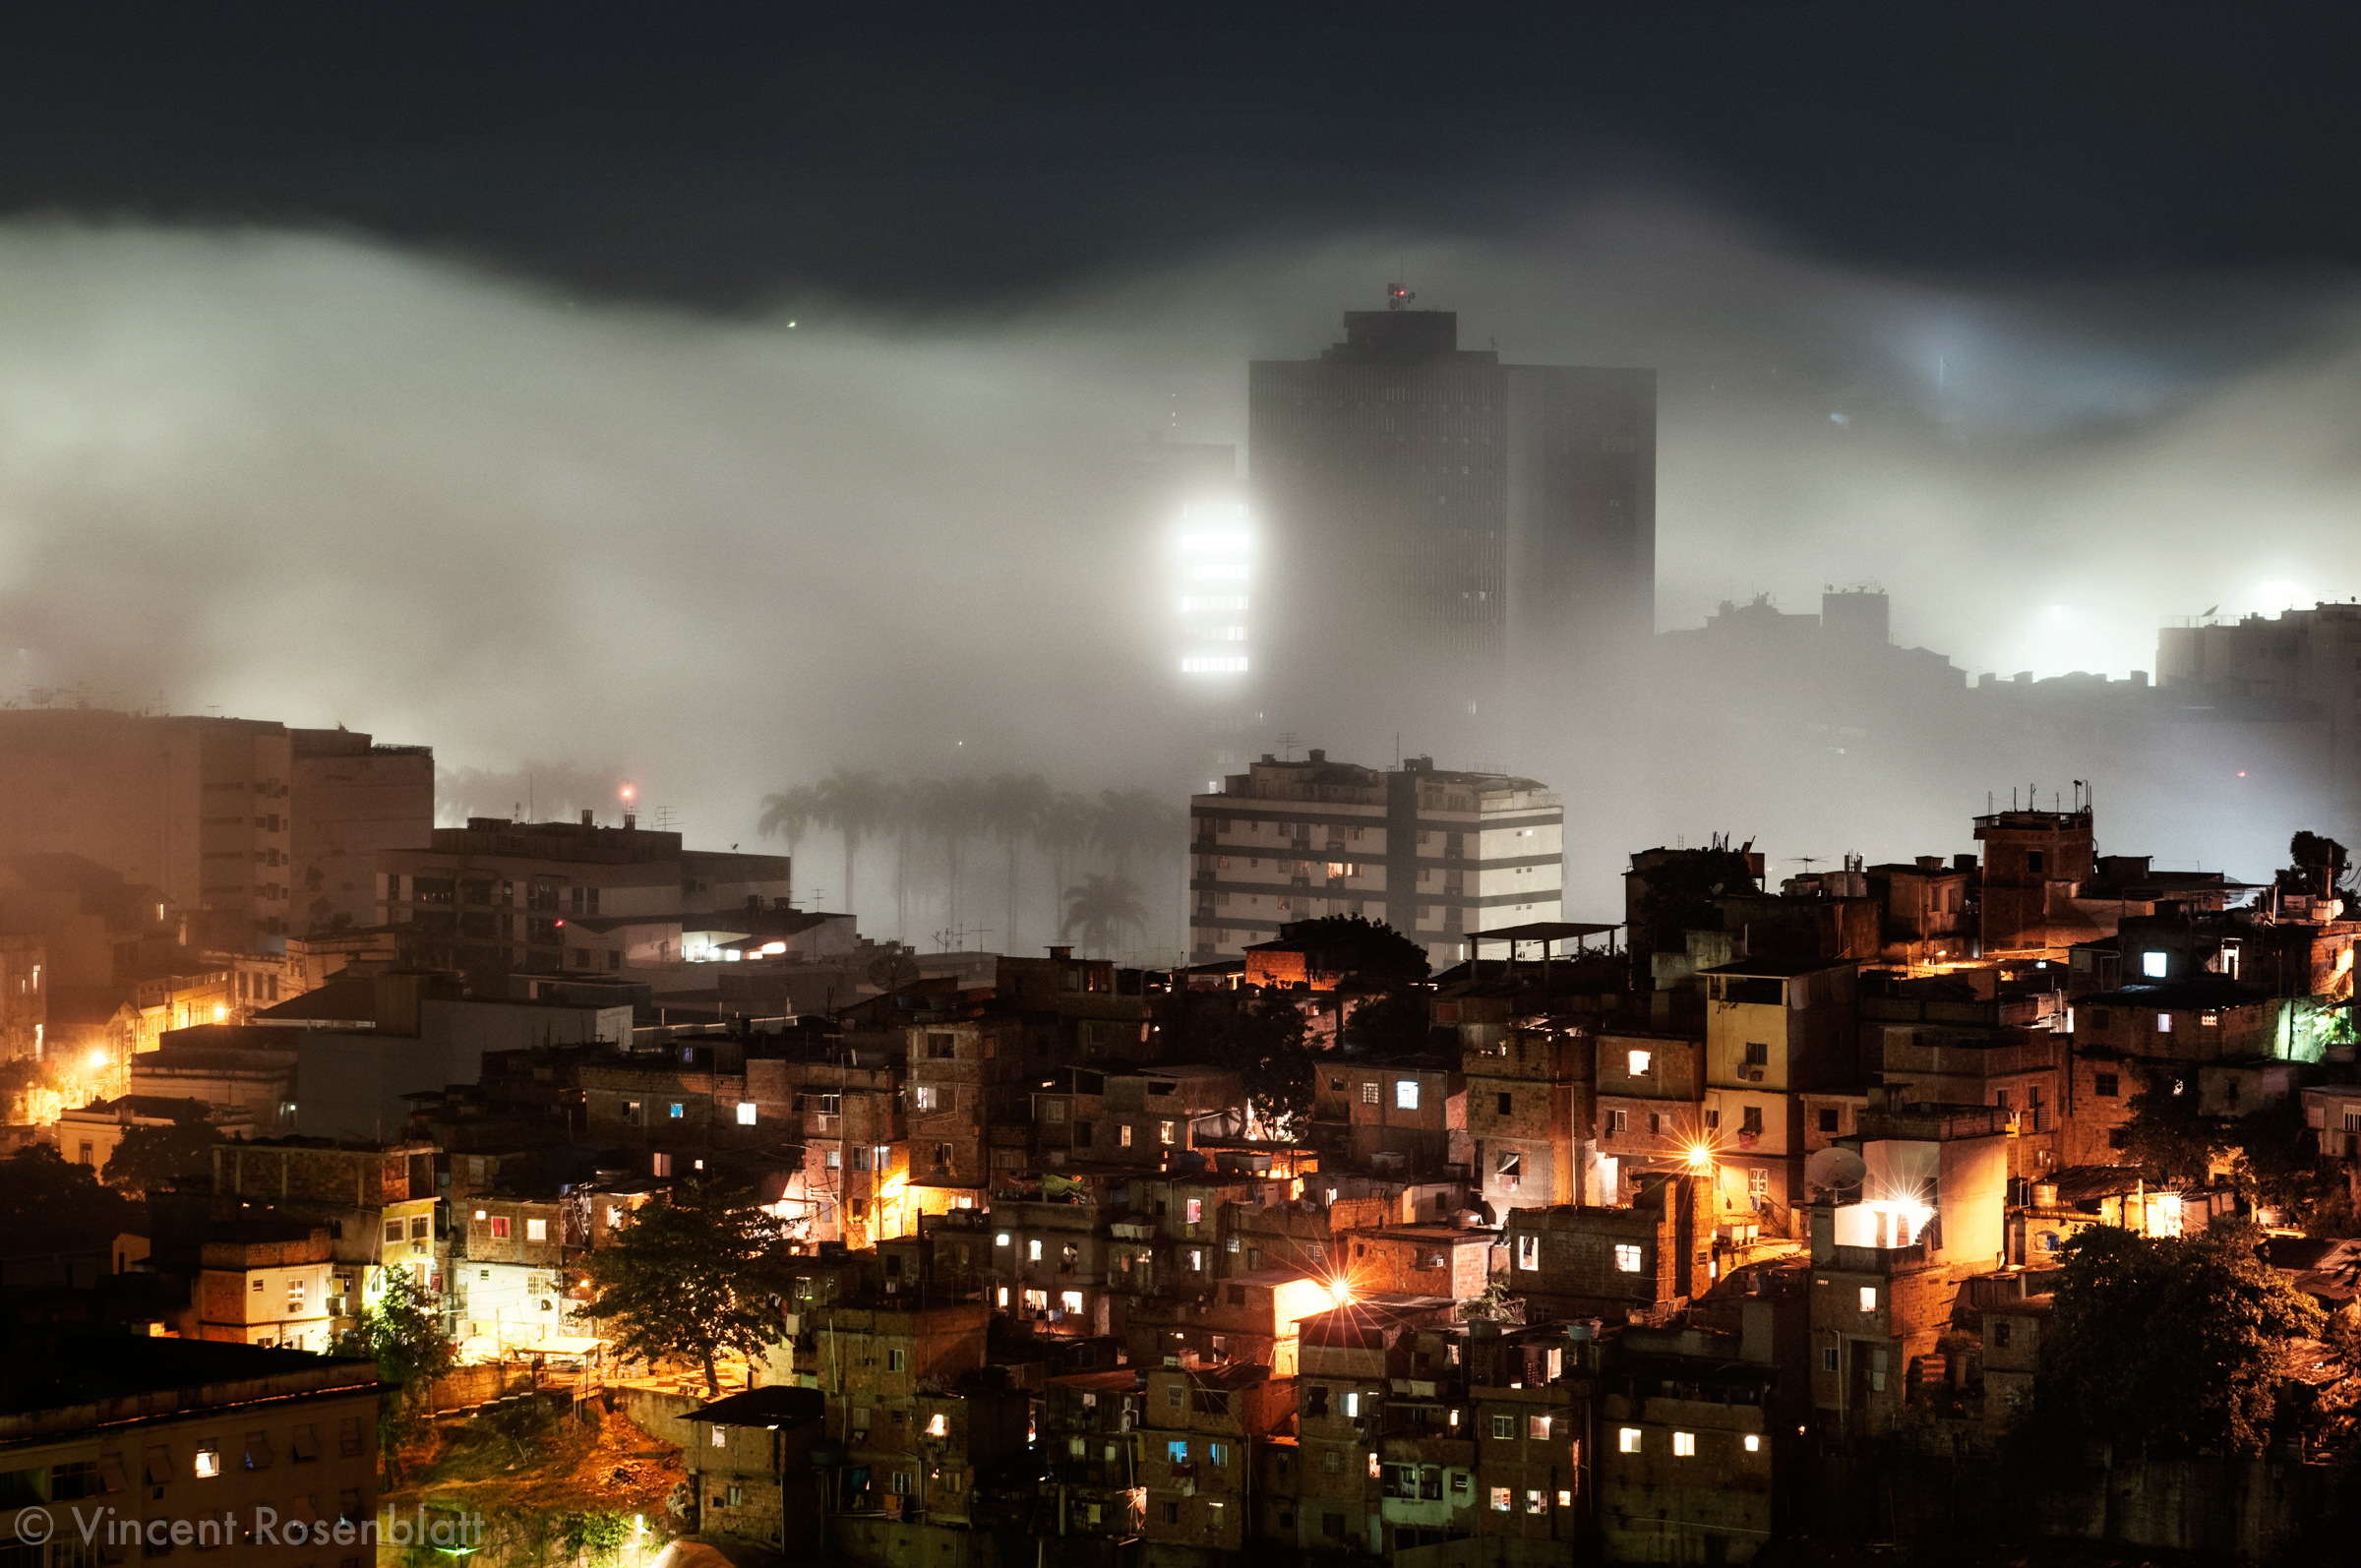 A sudden fog, coming from the sea, appears and covers the borough of Flamengo : on the foreground, the favela Santo Amaro..